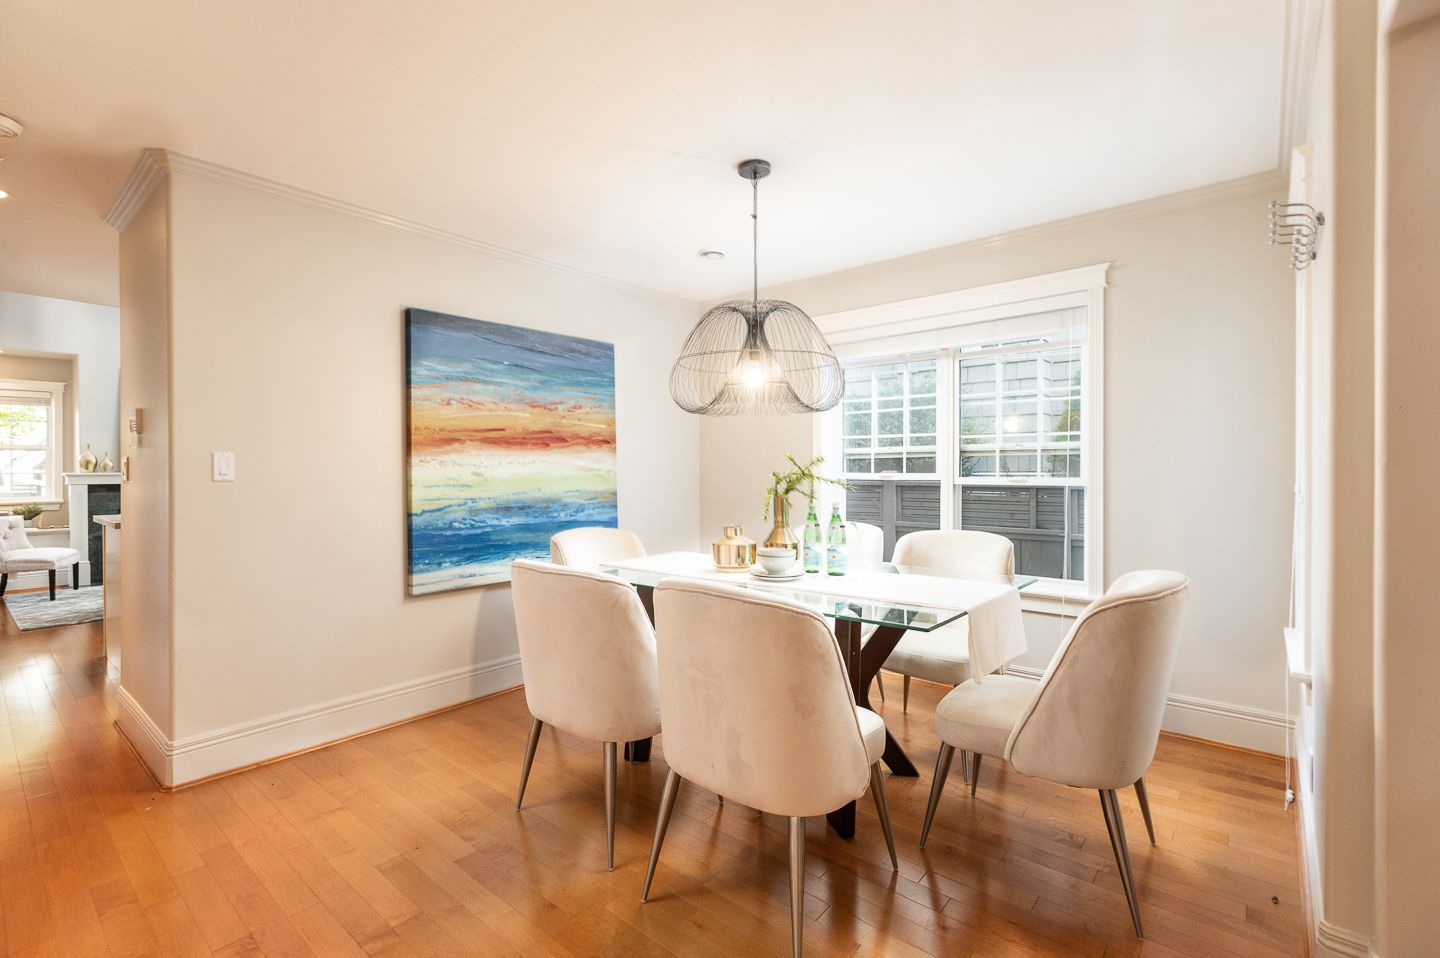 Photo 6: Photos: 2267 WEST 13TH AV in VANCOUVER: Kitsilano 1/2 Duplex for sale (Vancouver West)  : MLS®# R2407976